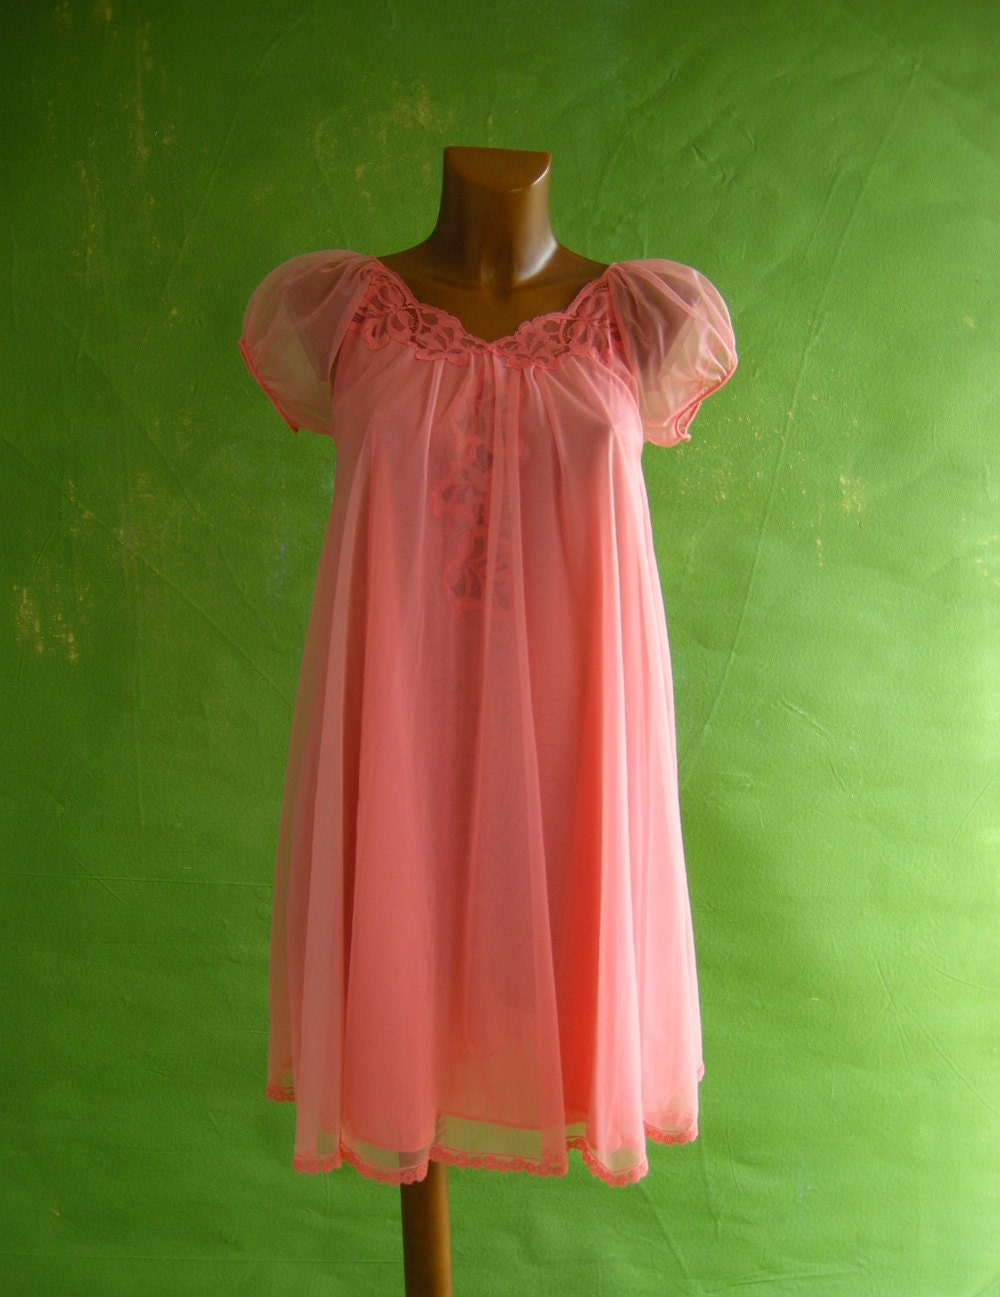 CORAL Chiffon Vintage 60s Babydoll Nightgown by empressjade from etsy.com